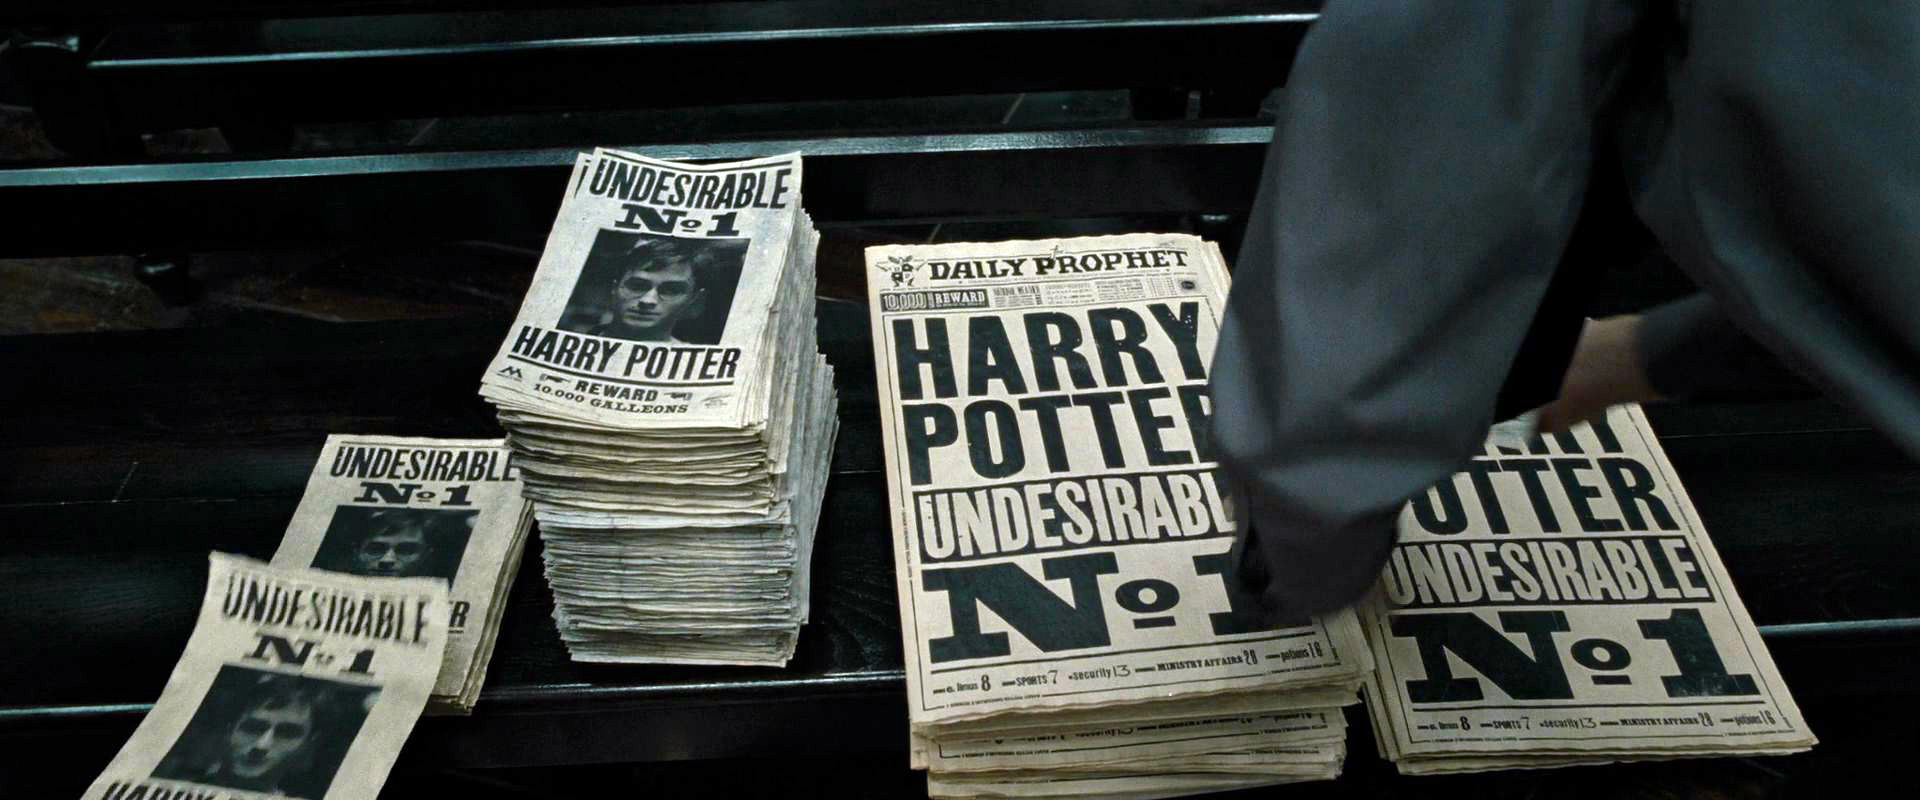 Harry Potter and the Unlawful Detainer